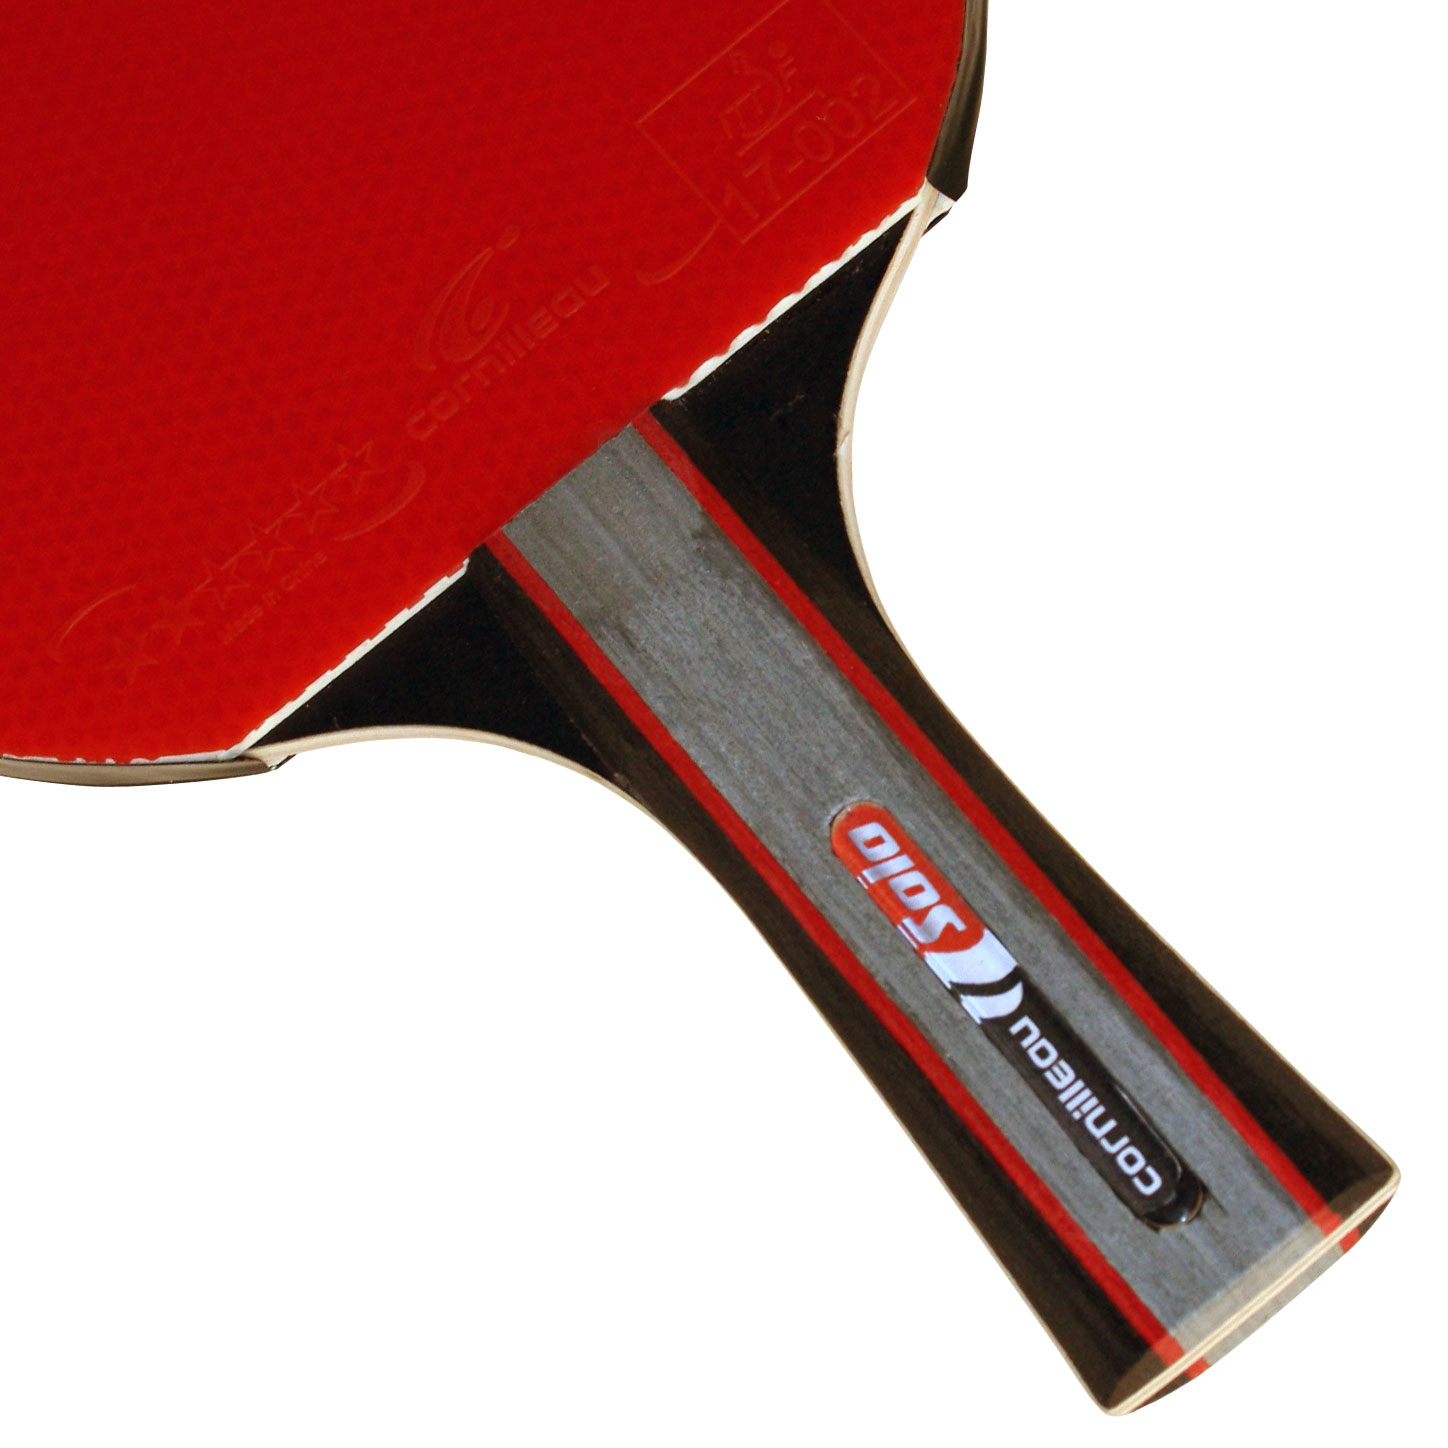 Cornilleau Sport Solo Table Tennis Set Ittf Bat Amp Cover